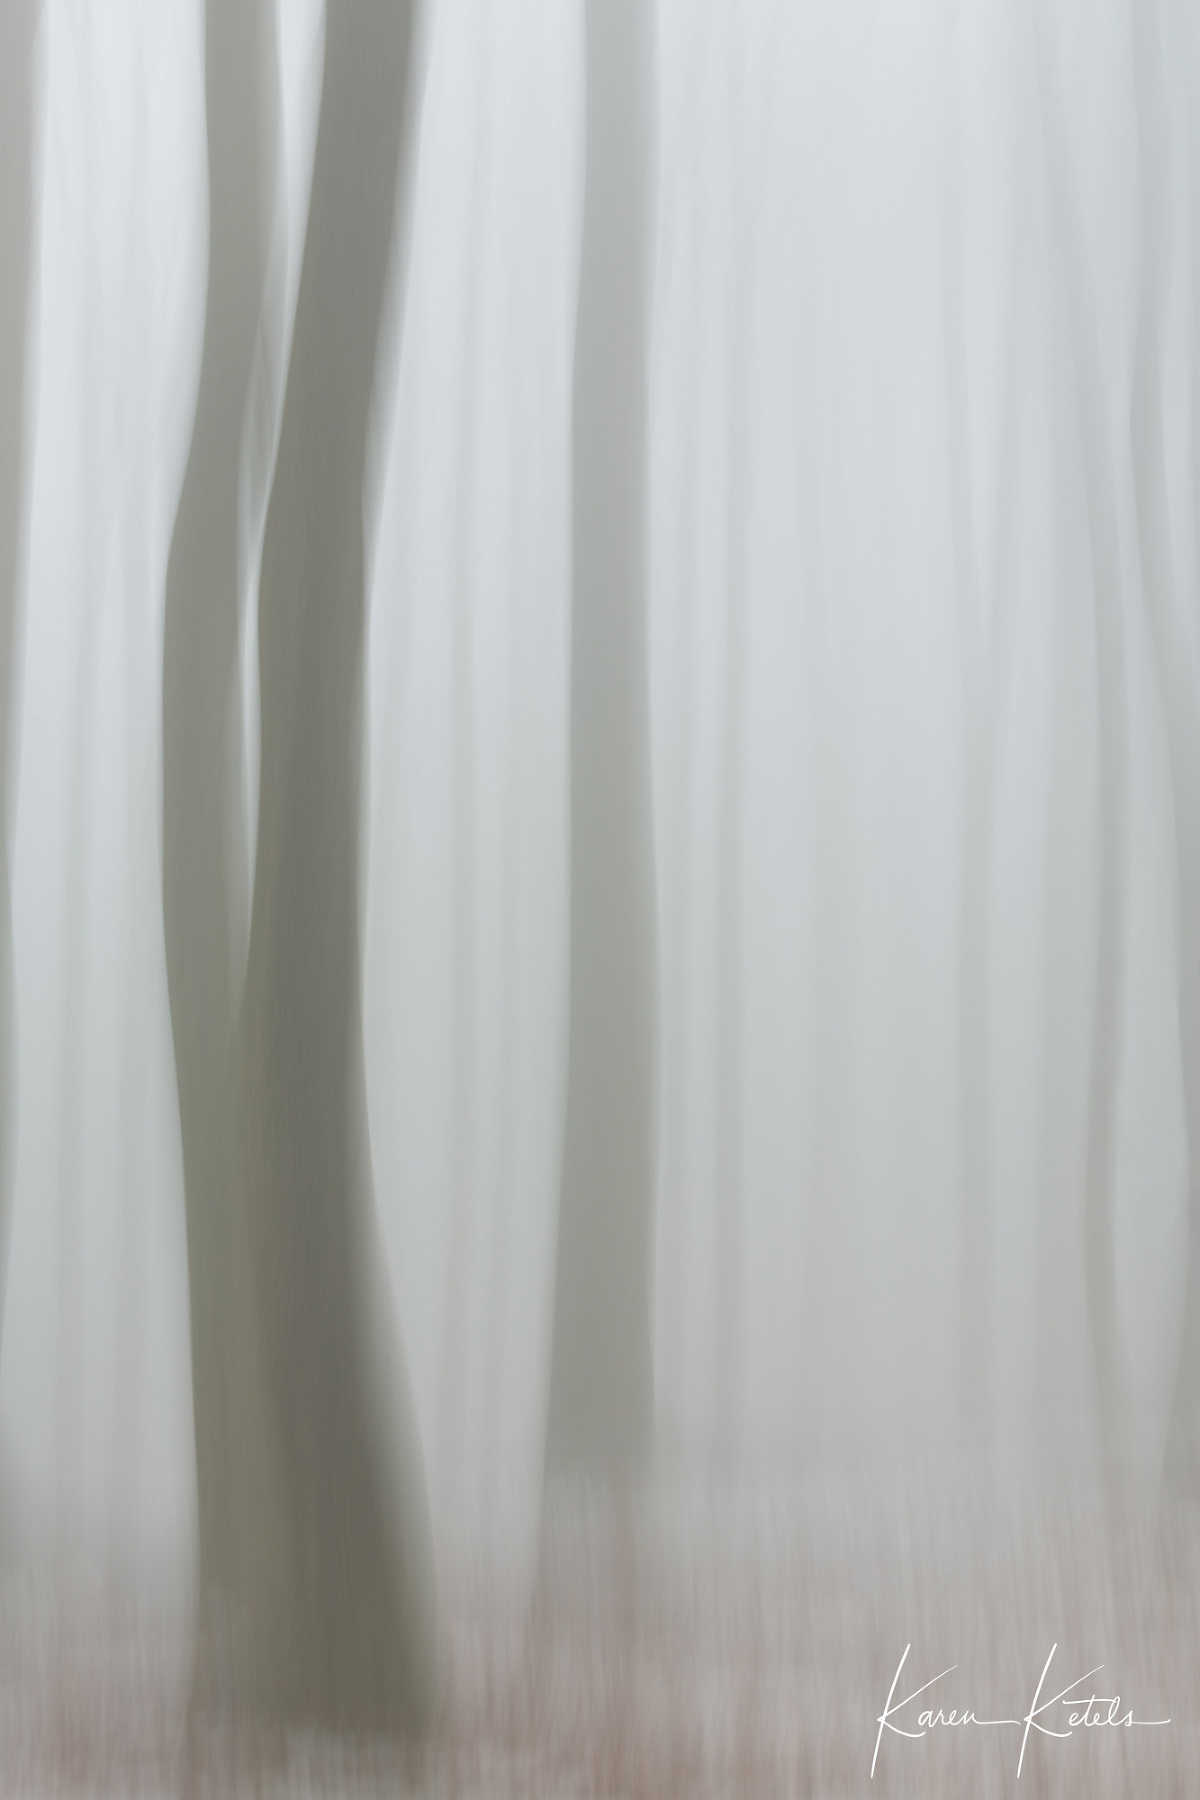 Fine art image of beech trees in the mist by Karen Ketels